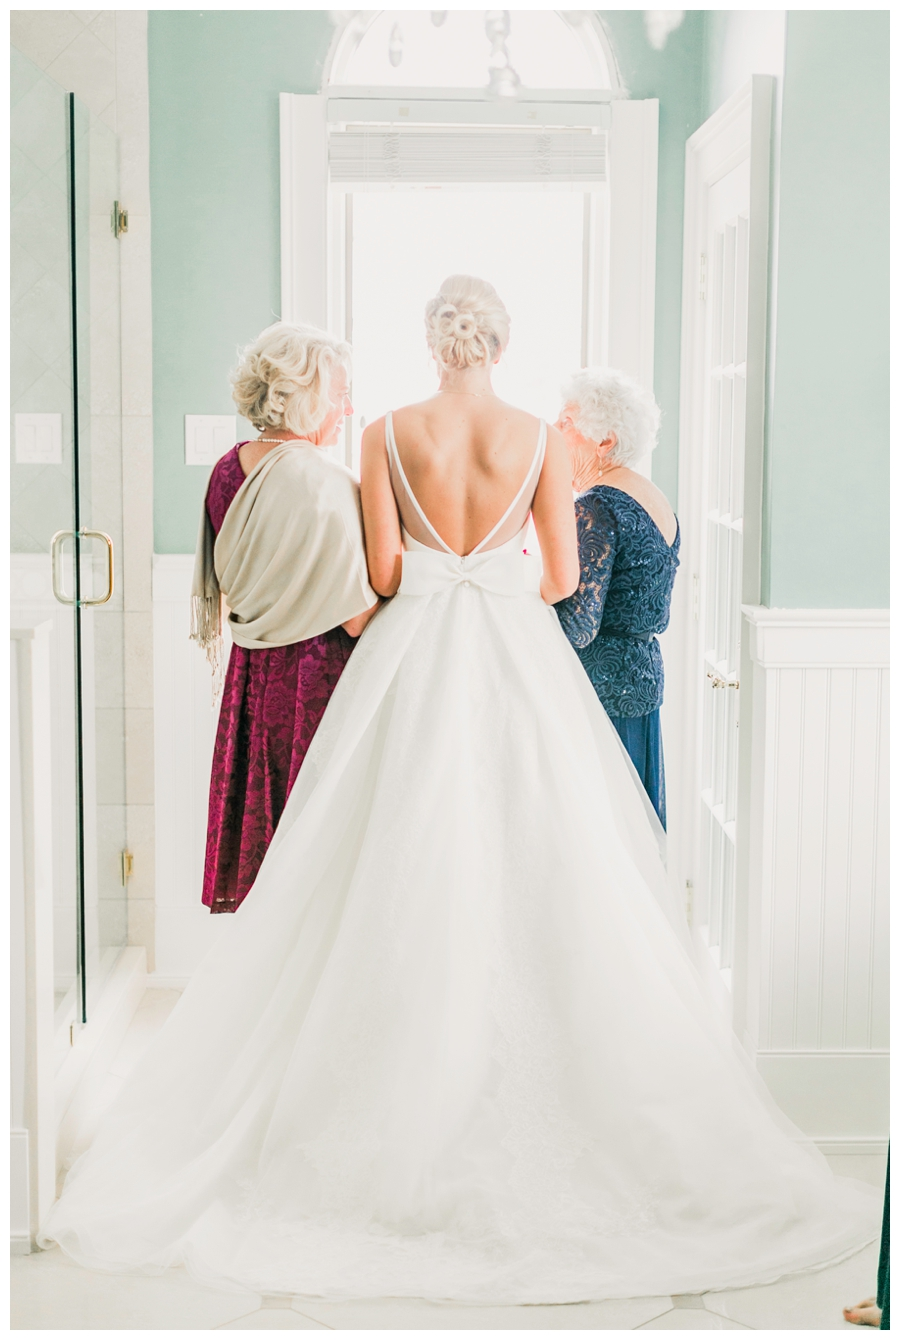 Light and Airy Photos of the bride in front of a window_0015.jpg